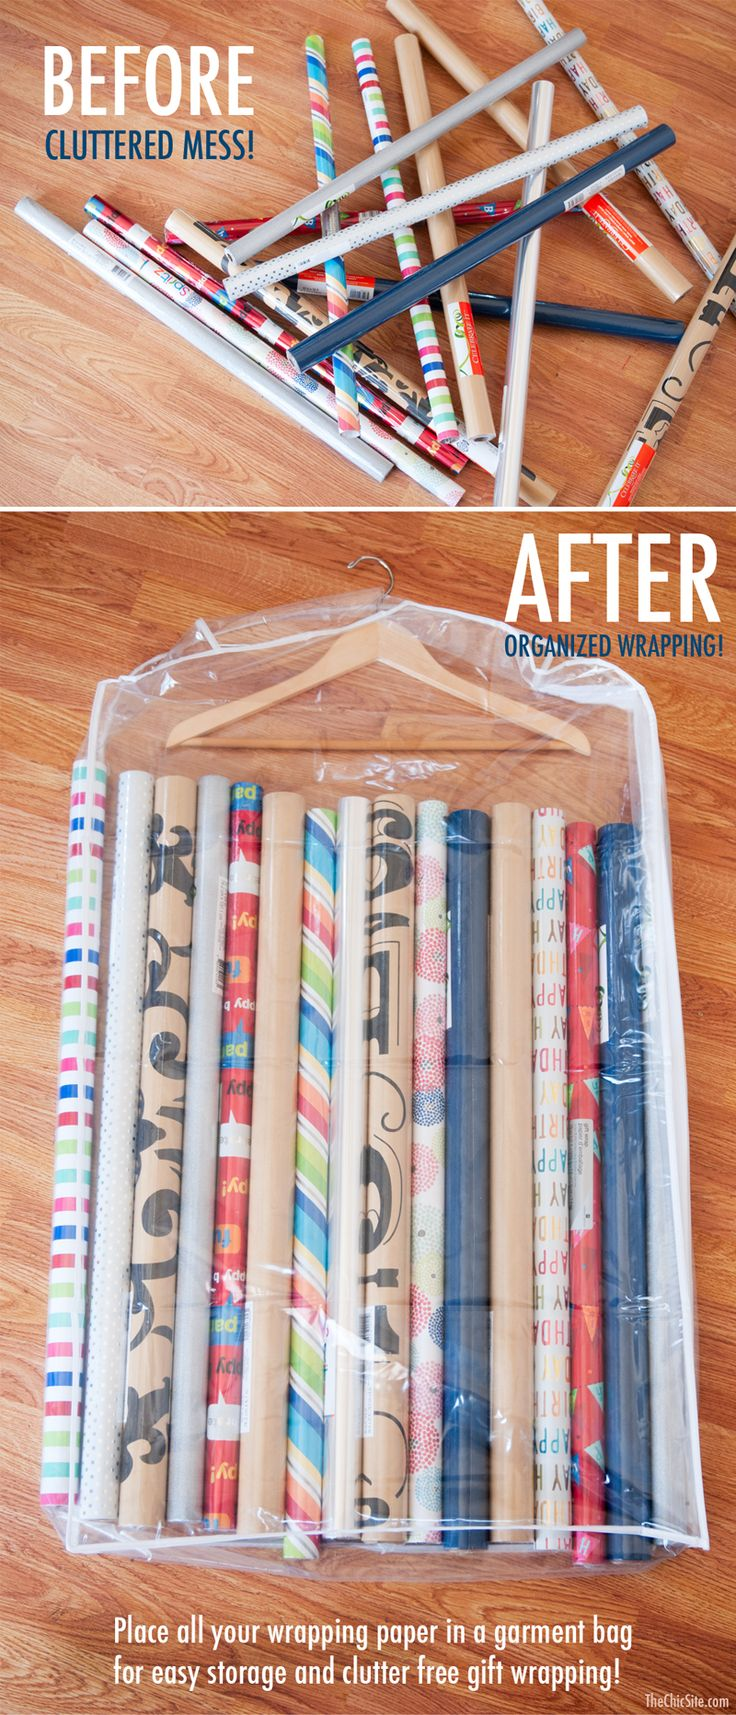 Store Your Wrapping Paper in a Garment Bag